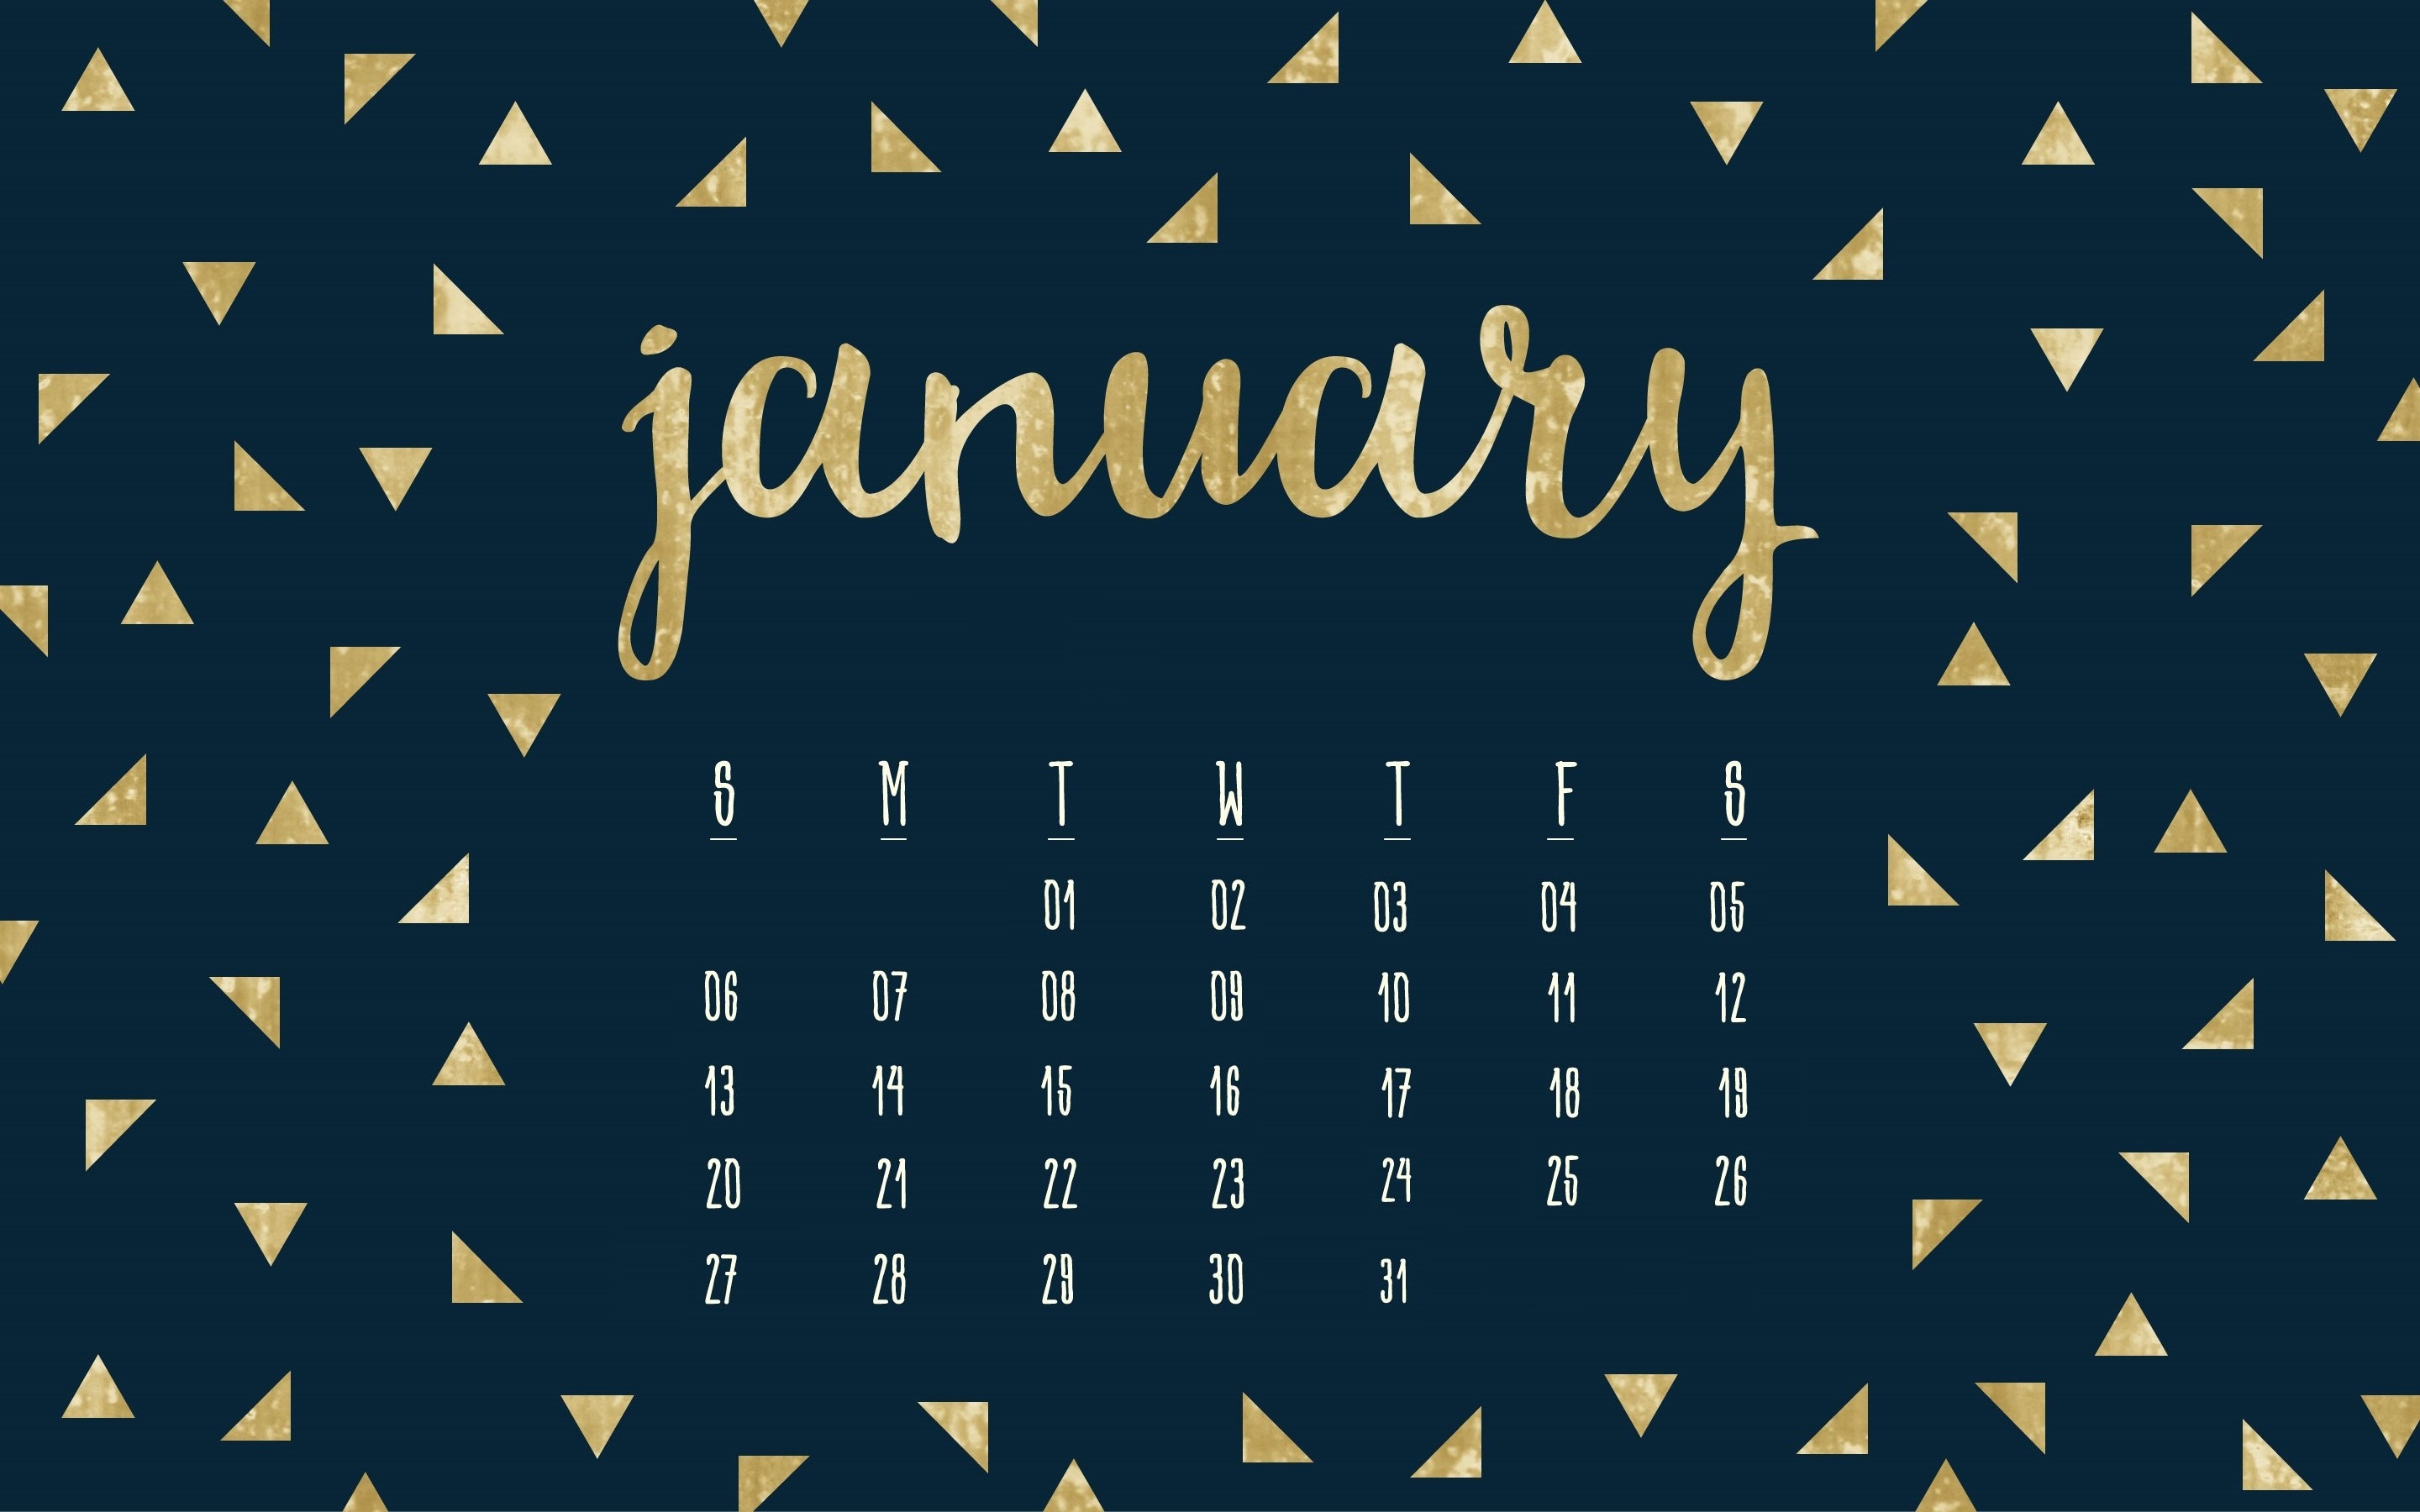 2880x1800px January 2019 Calendar Wallpapers 2880x1800